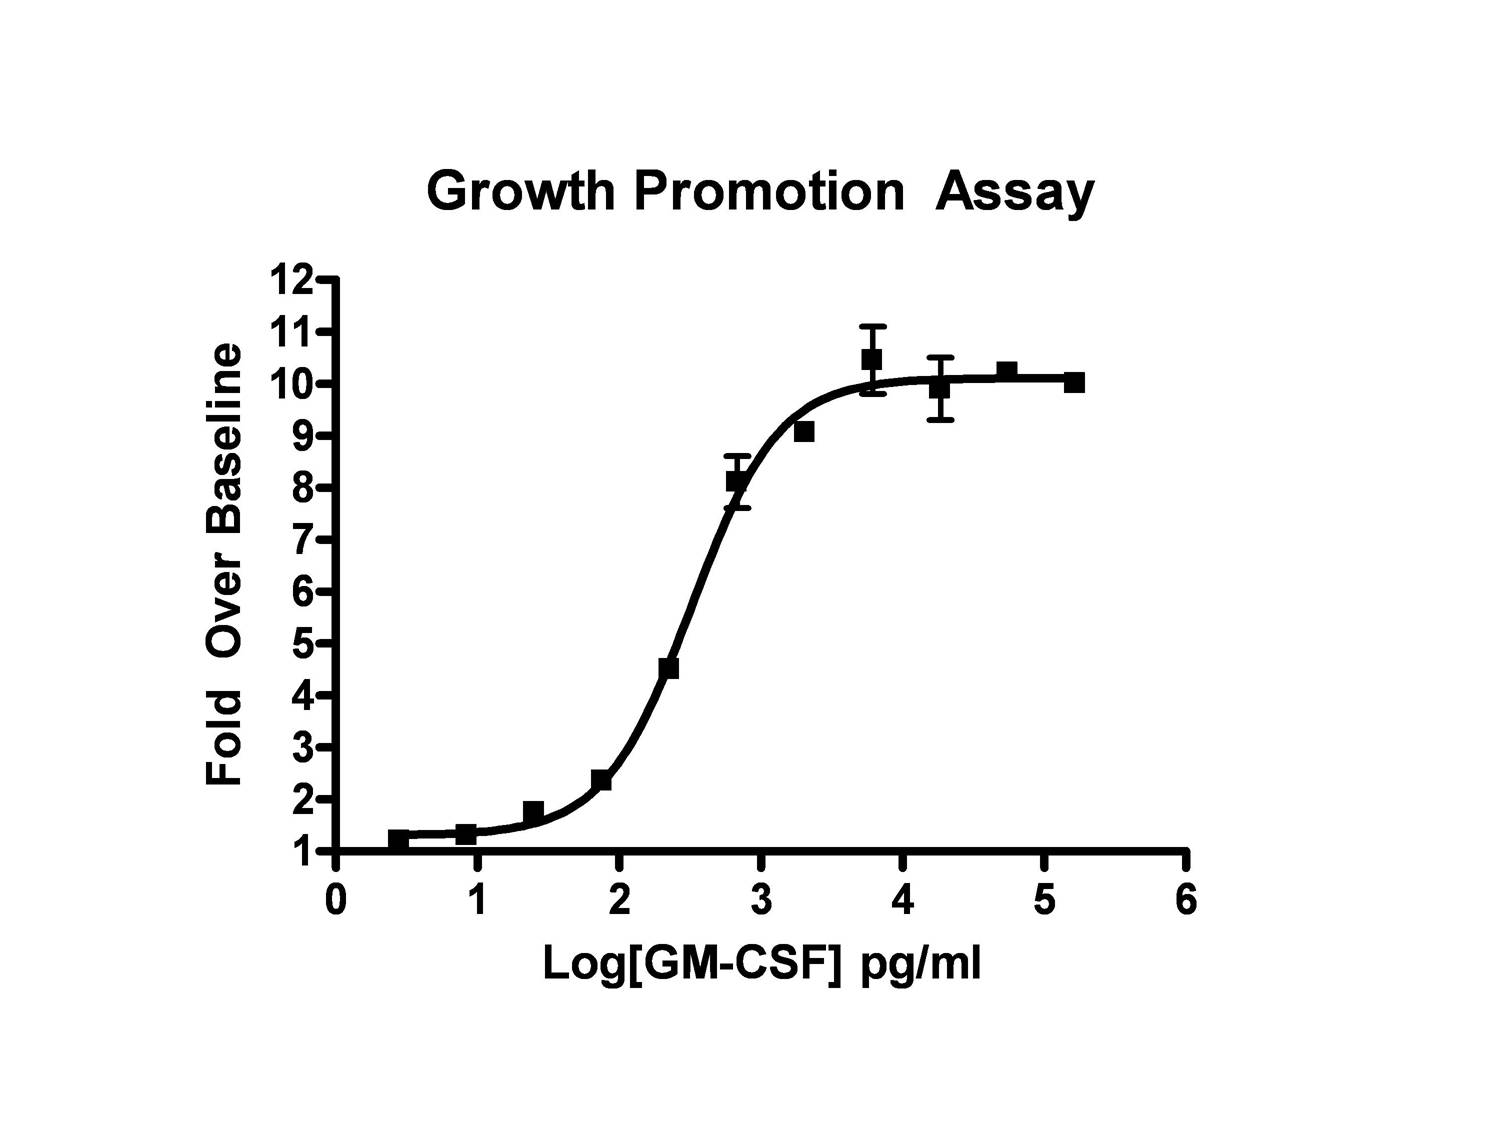 PBL Growth Promotion Assay Service